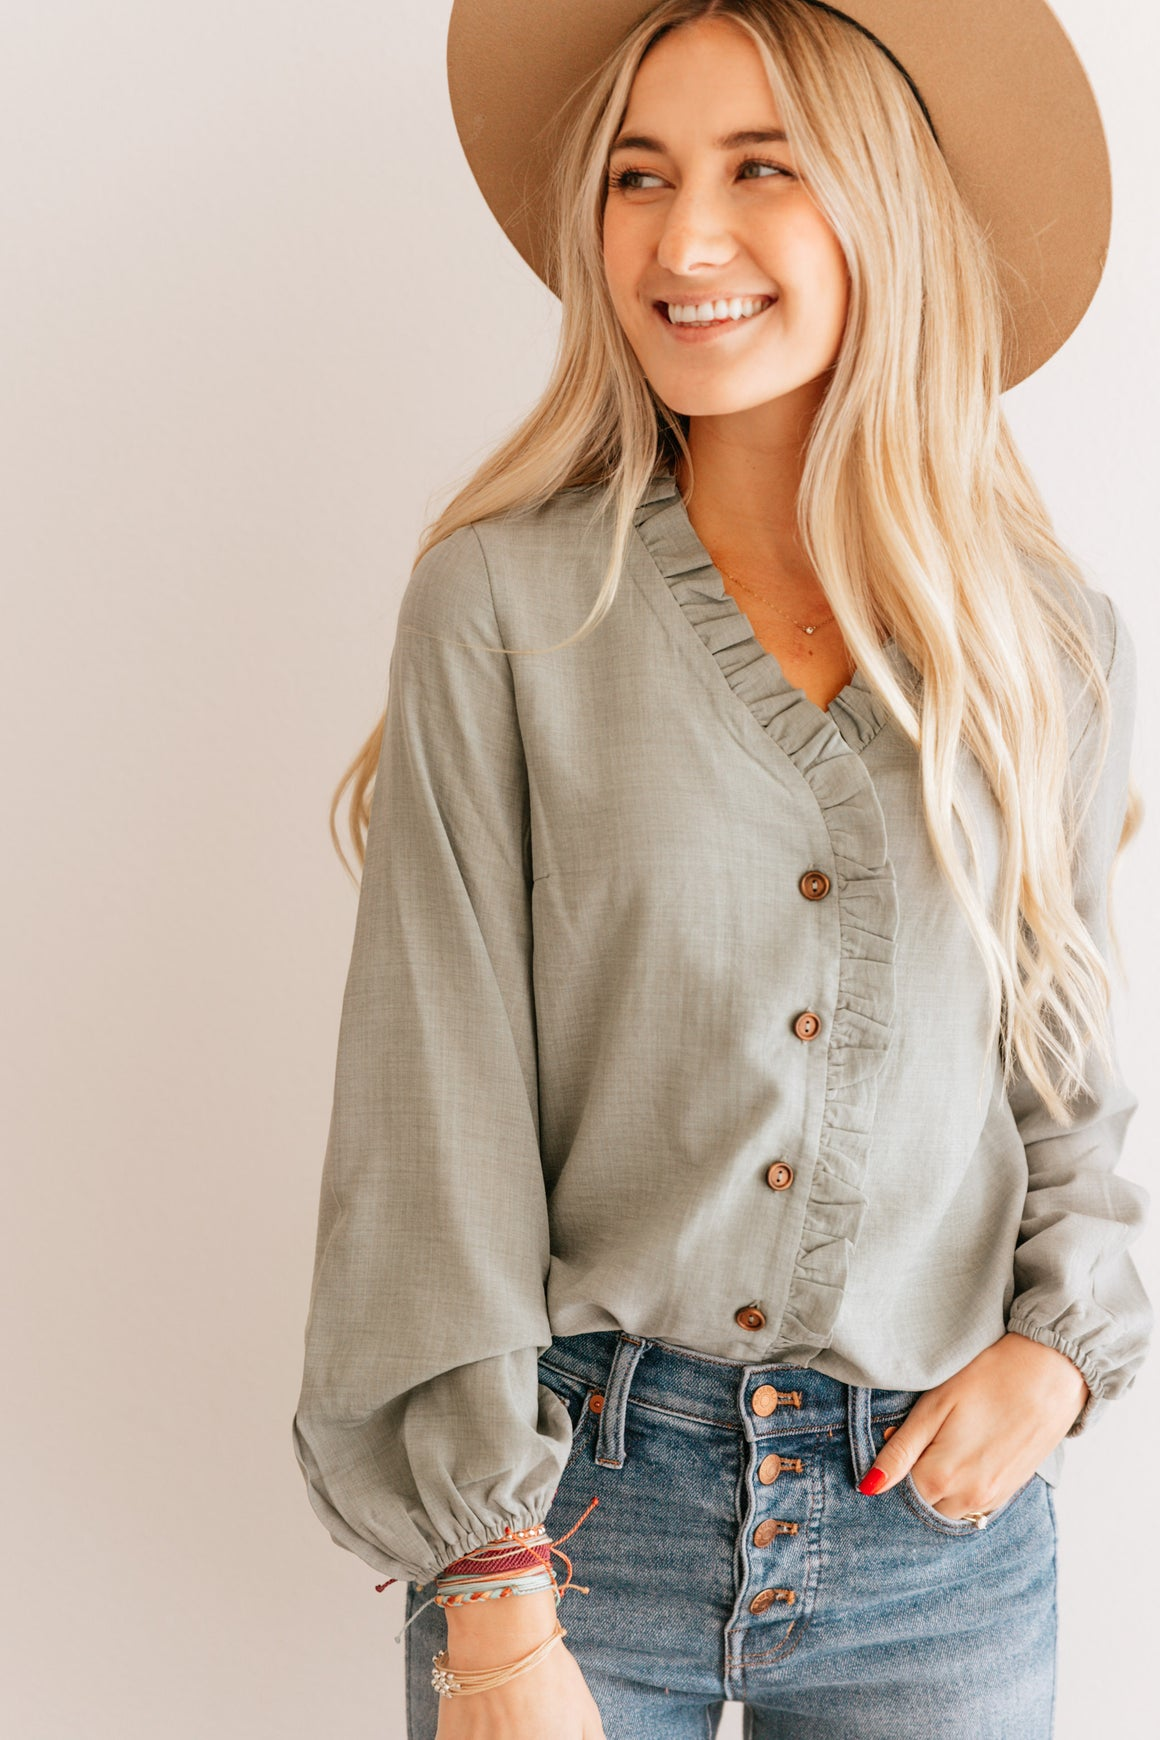 Ruffle Trim Button up Top